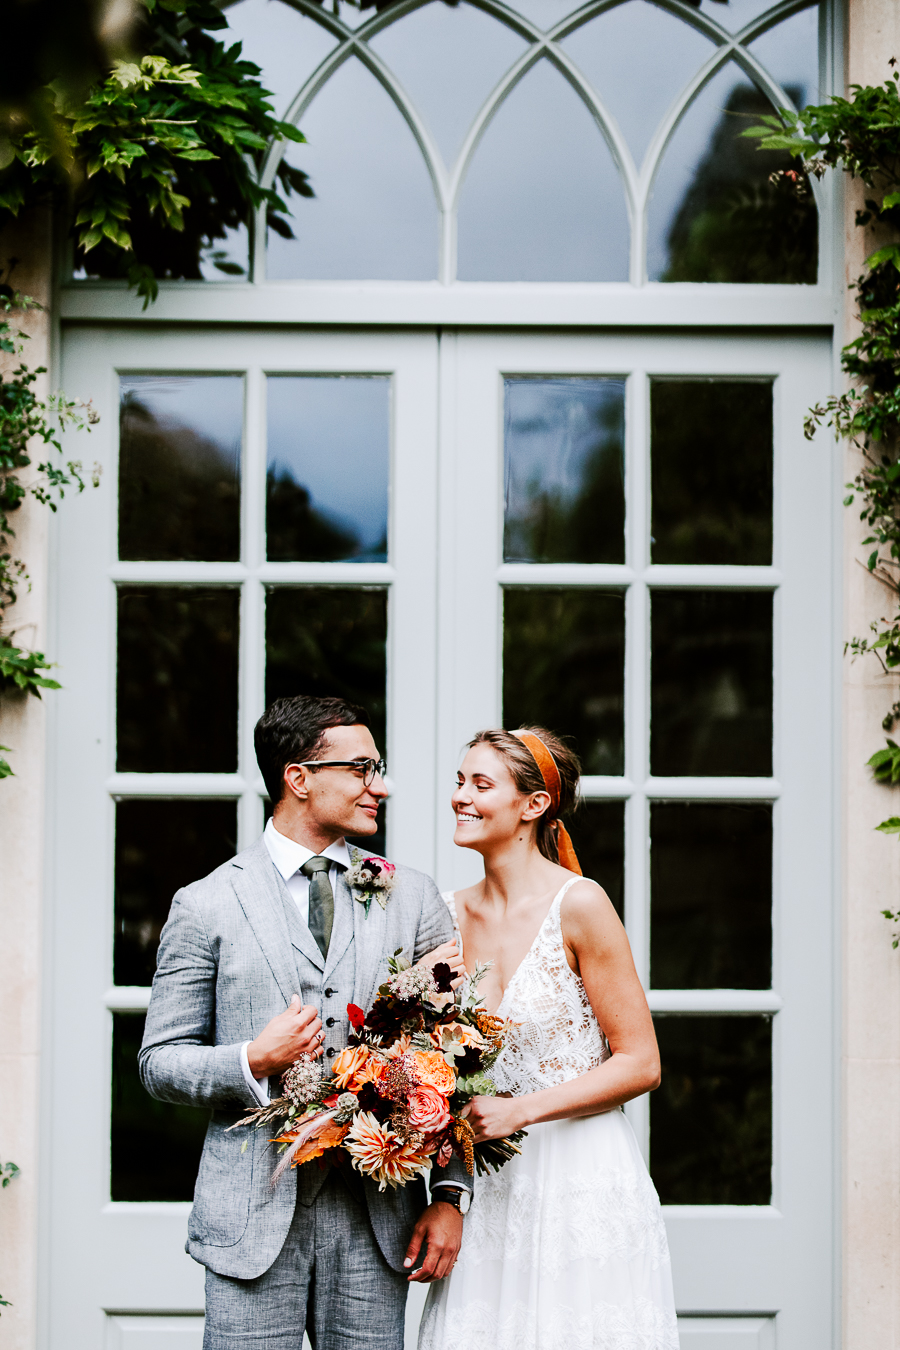 A magical wiltshire wedding venue - the Lost Orangery with Sam Cook Photography (27)